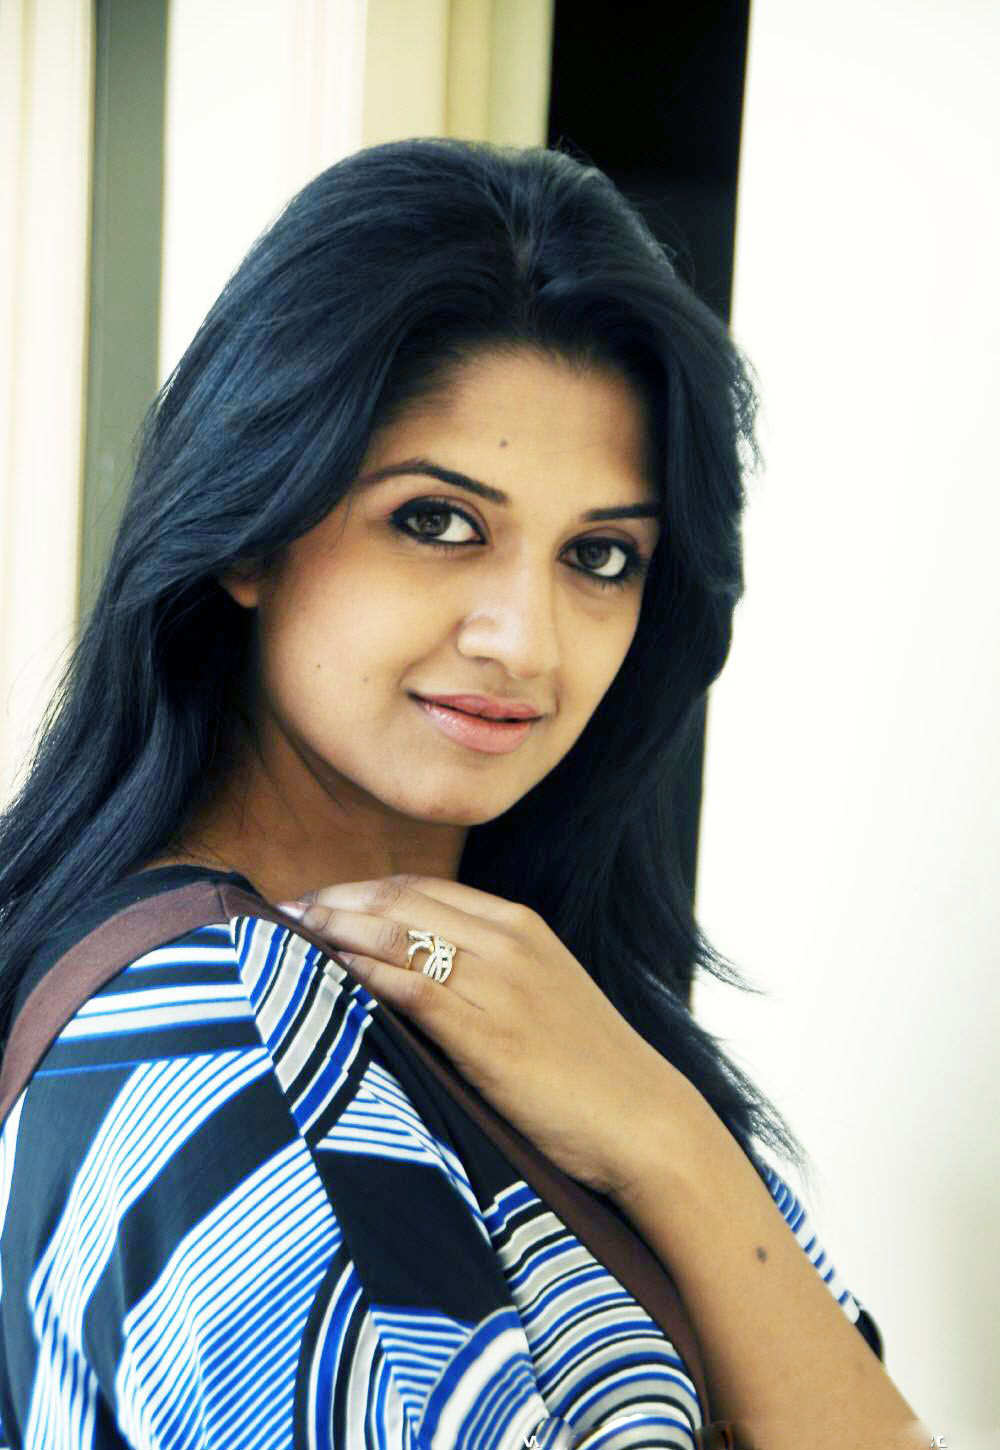 Zu Fun: Vimala Raman an Indian Cool Young Girl